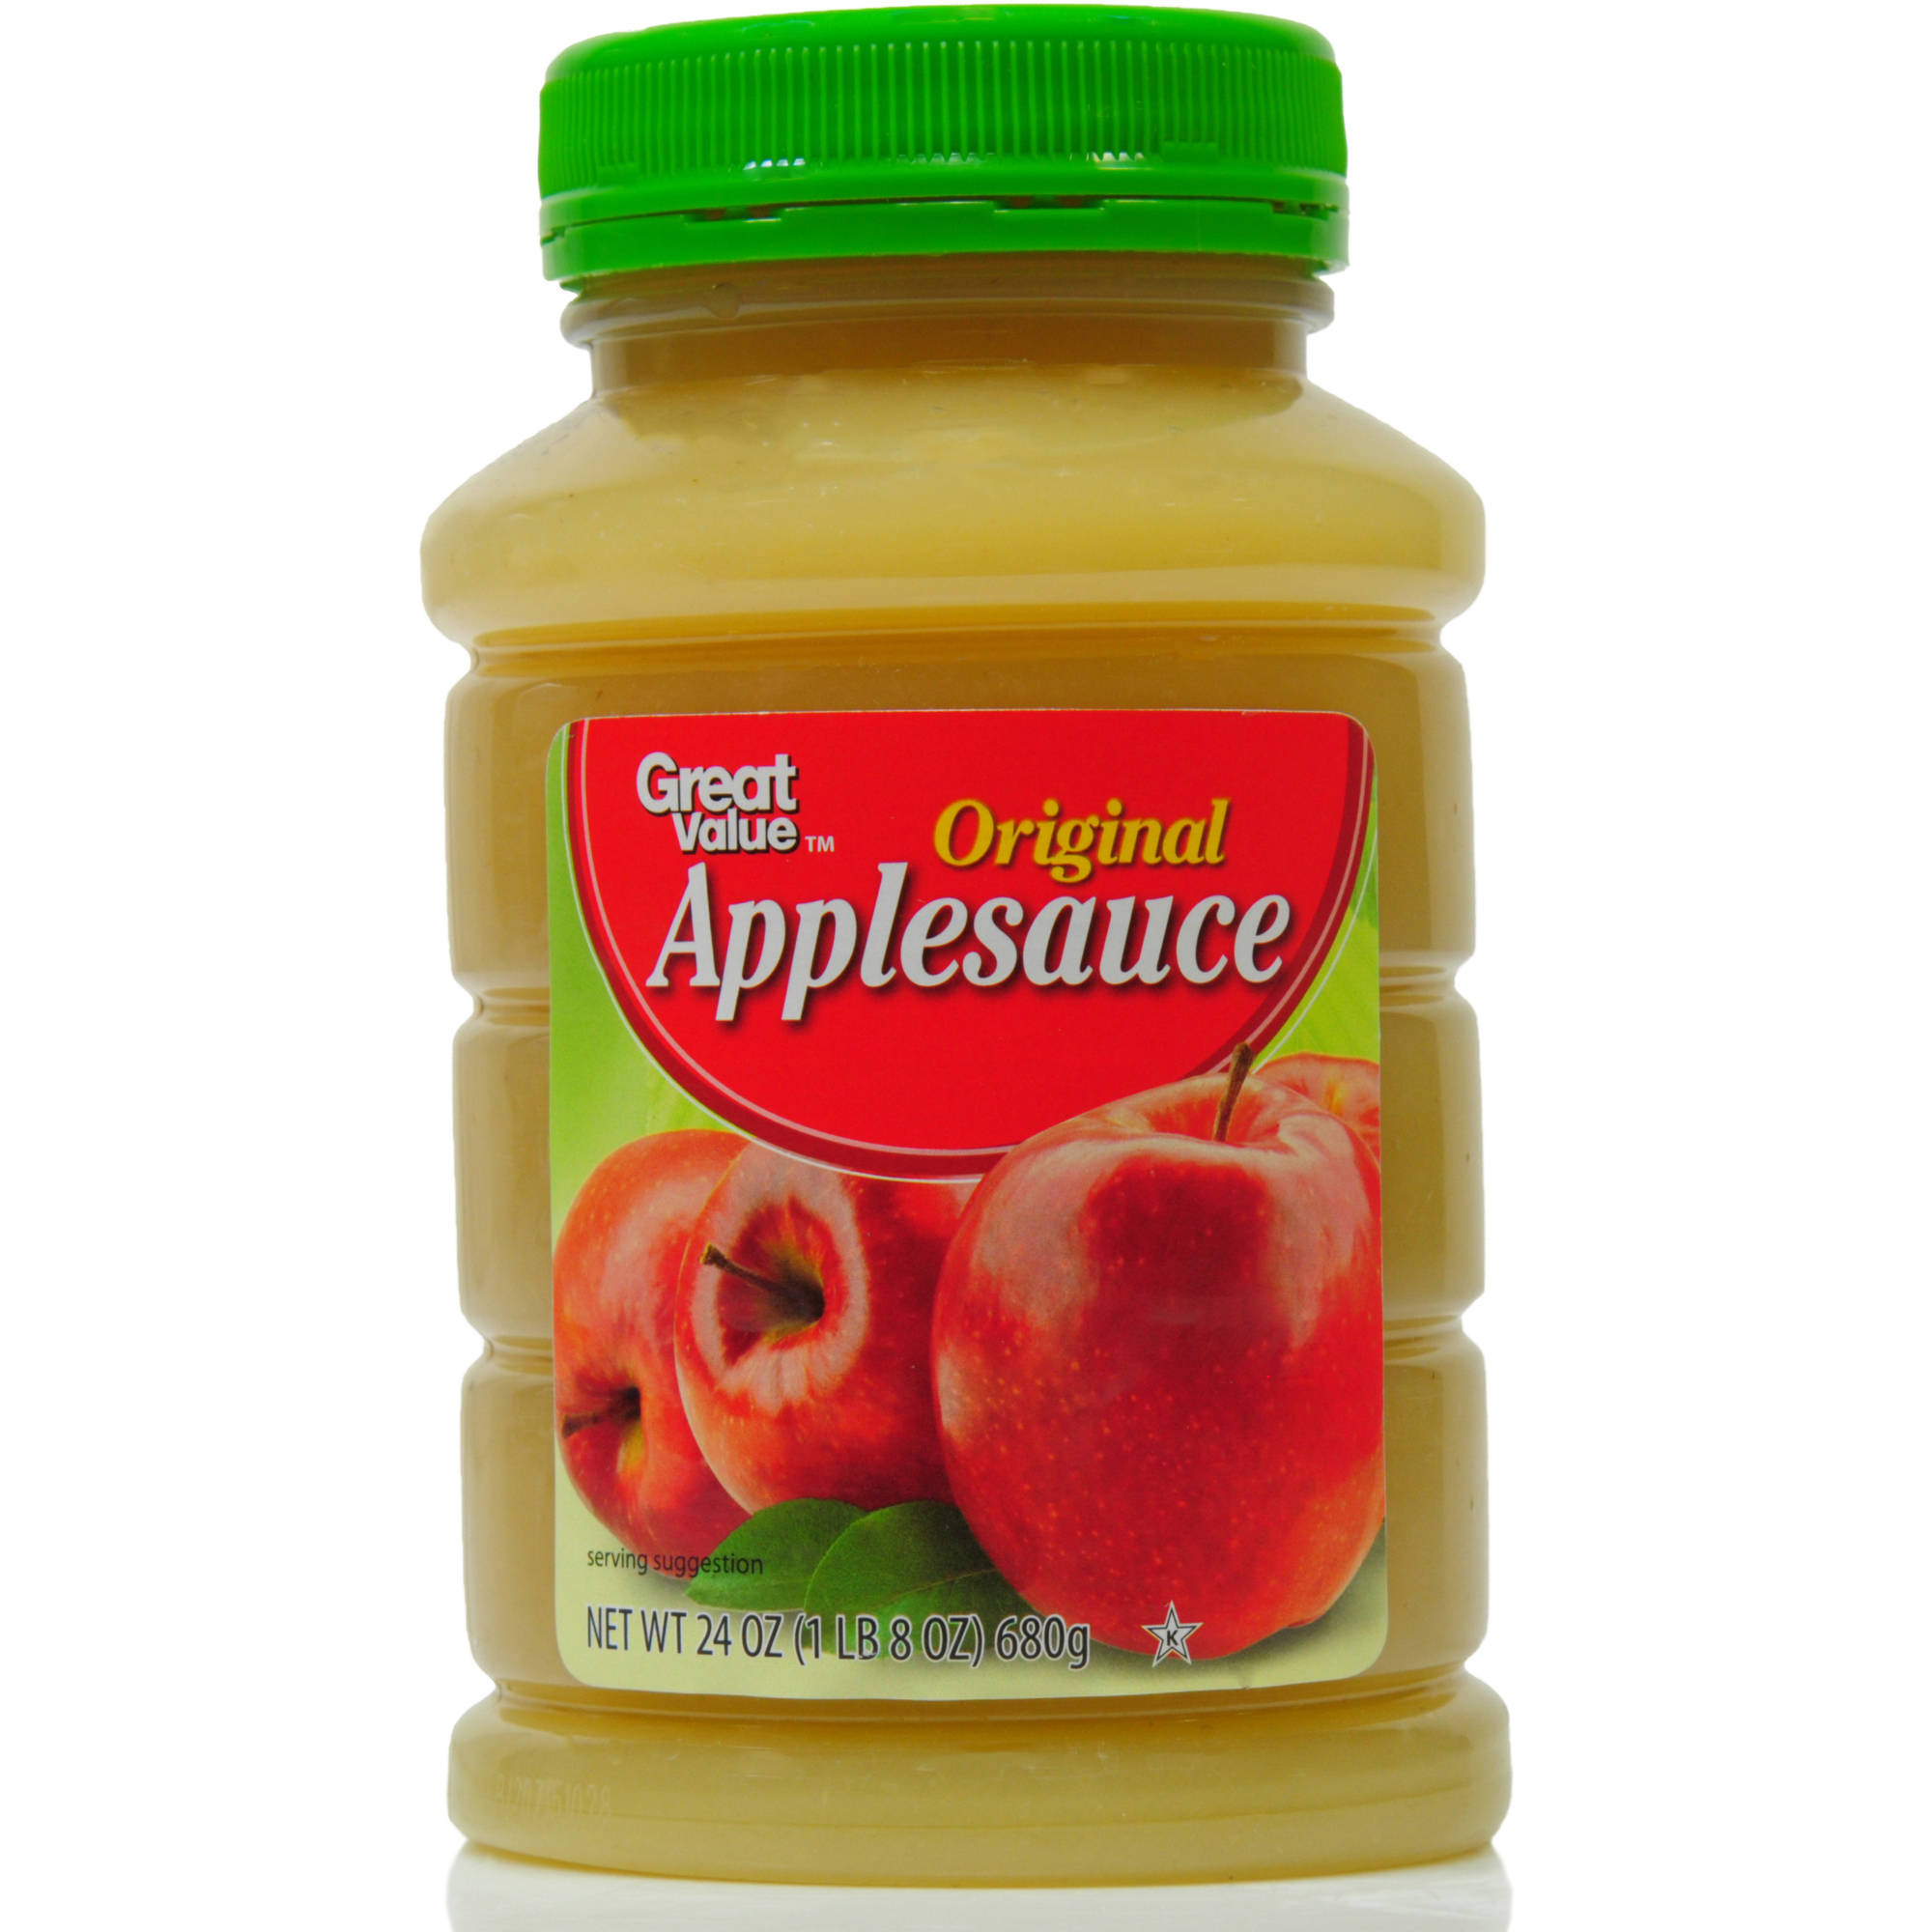 Great Value Original Applesauce, 24 oz